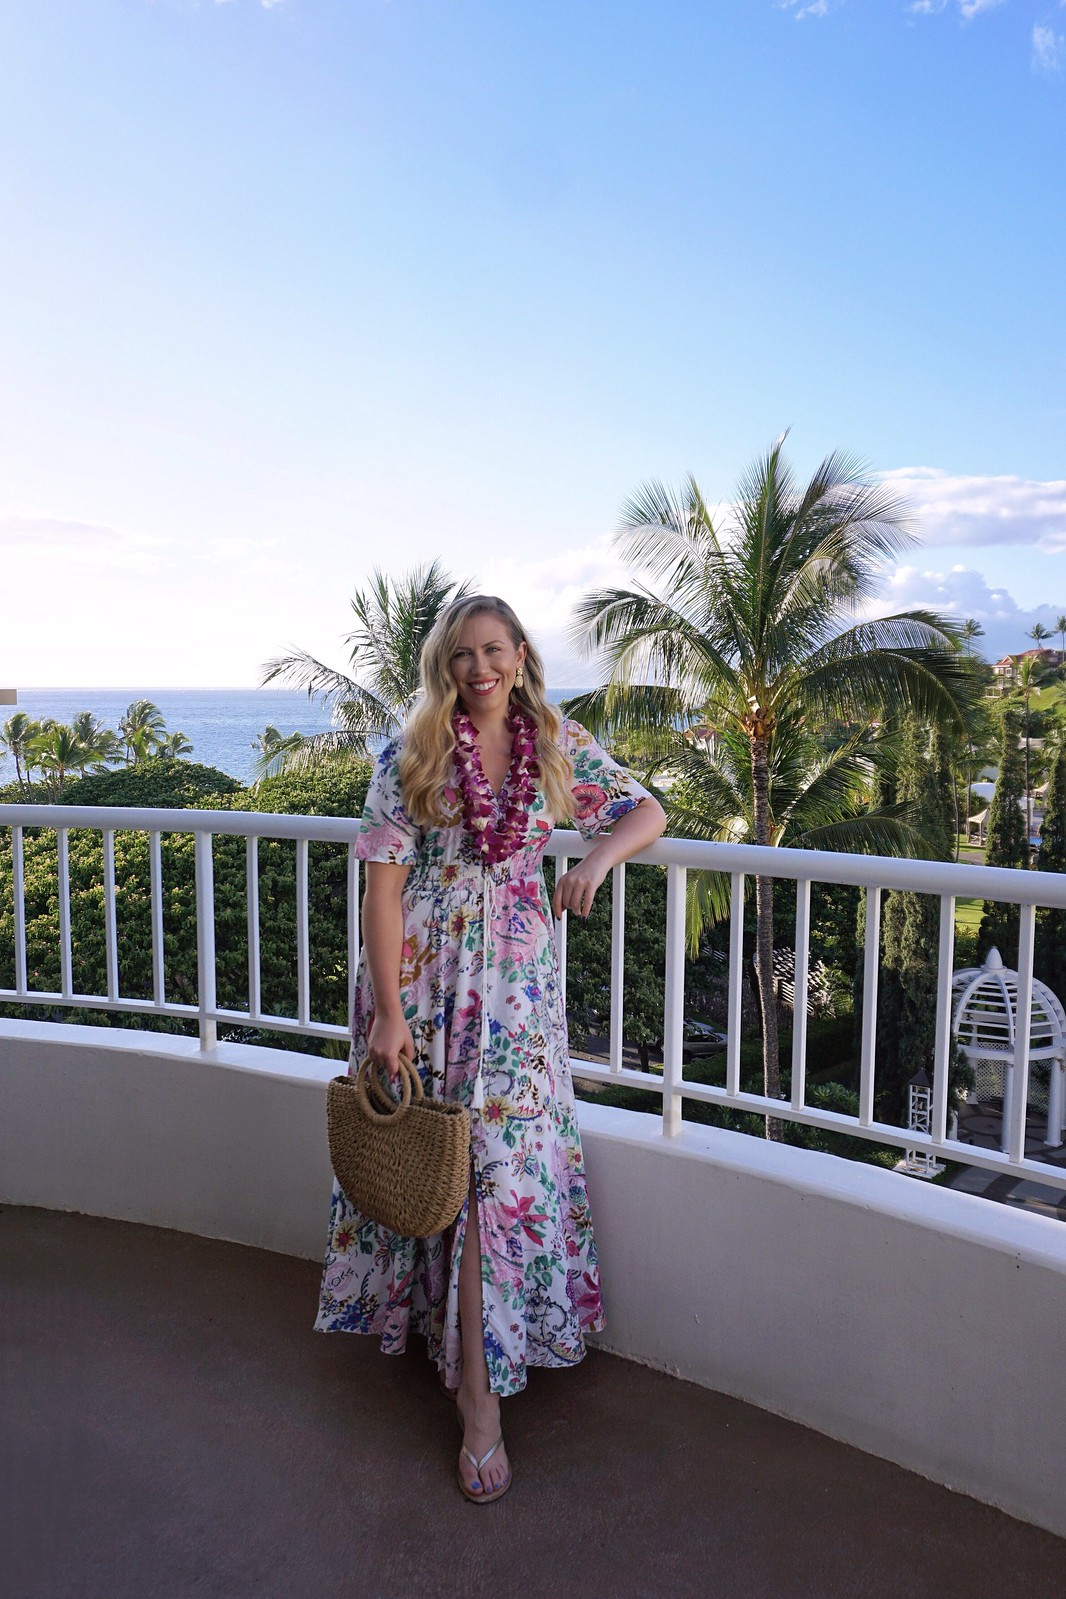 Hawaii Outfit Inspiration Shein Floral Maxi Dress Rattan Bag Balcony View Fairmont Kea Lani Maui Hawaii